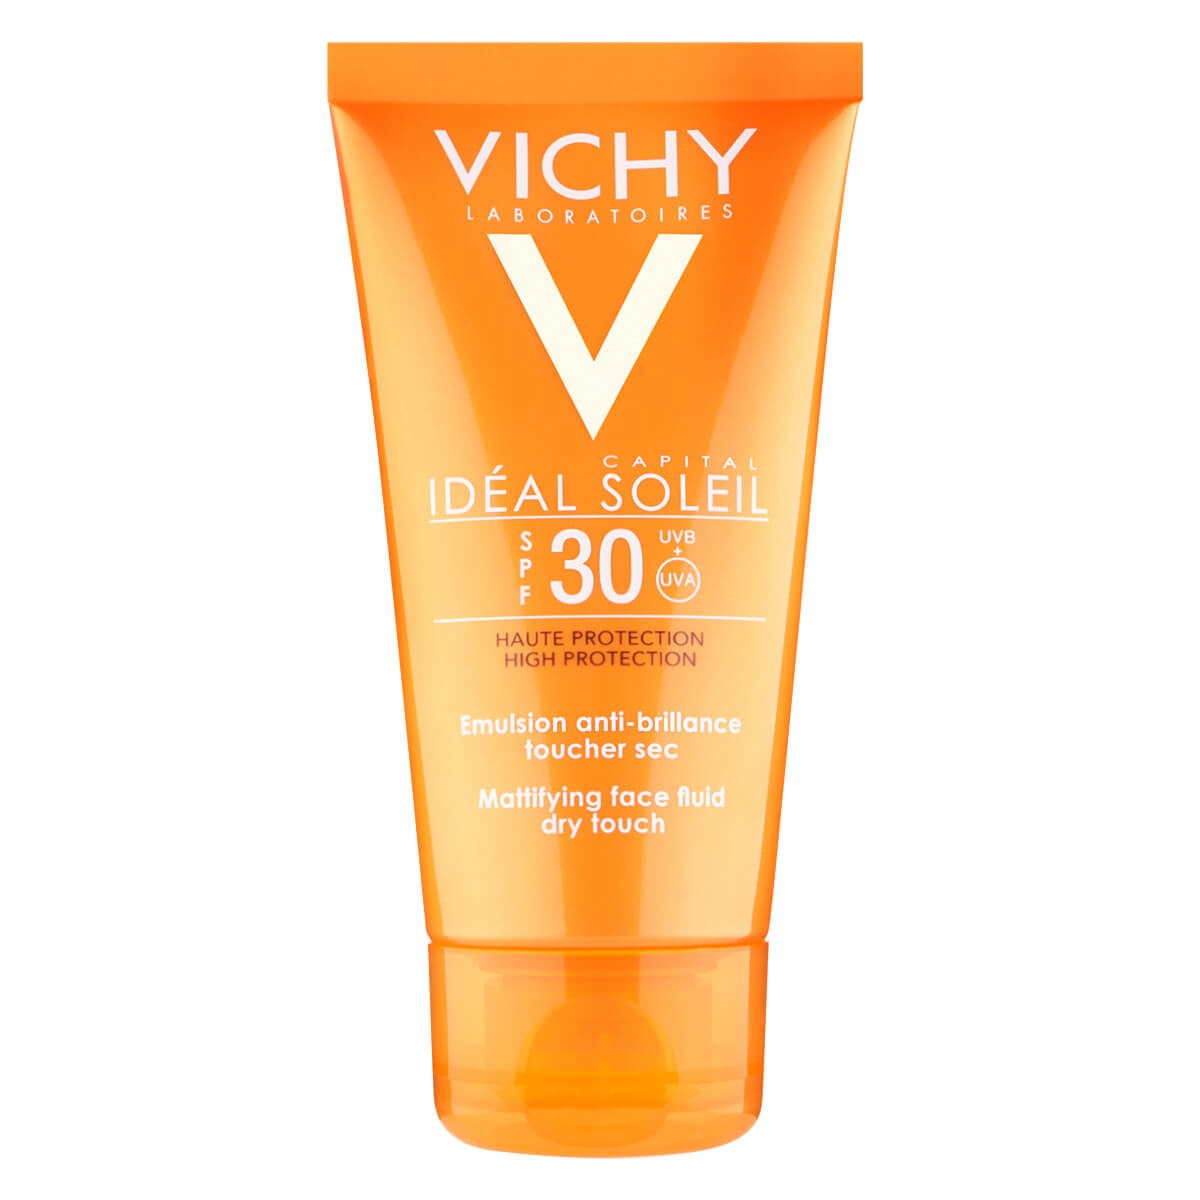 Vichy Ideal Soleil Dry Touch Face Fluid SPF30